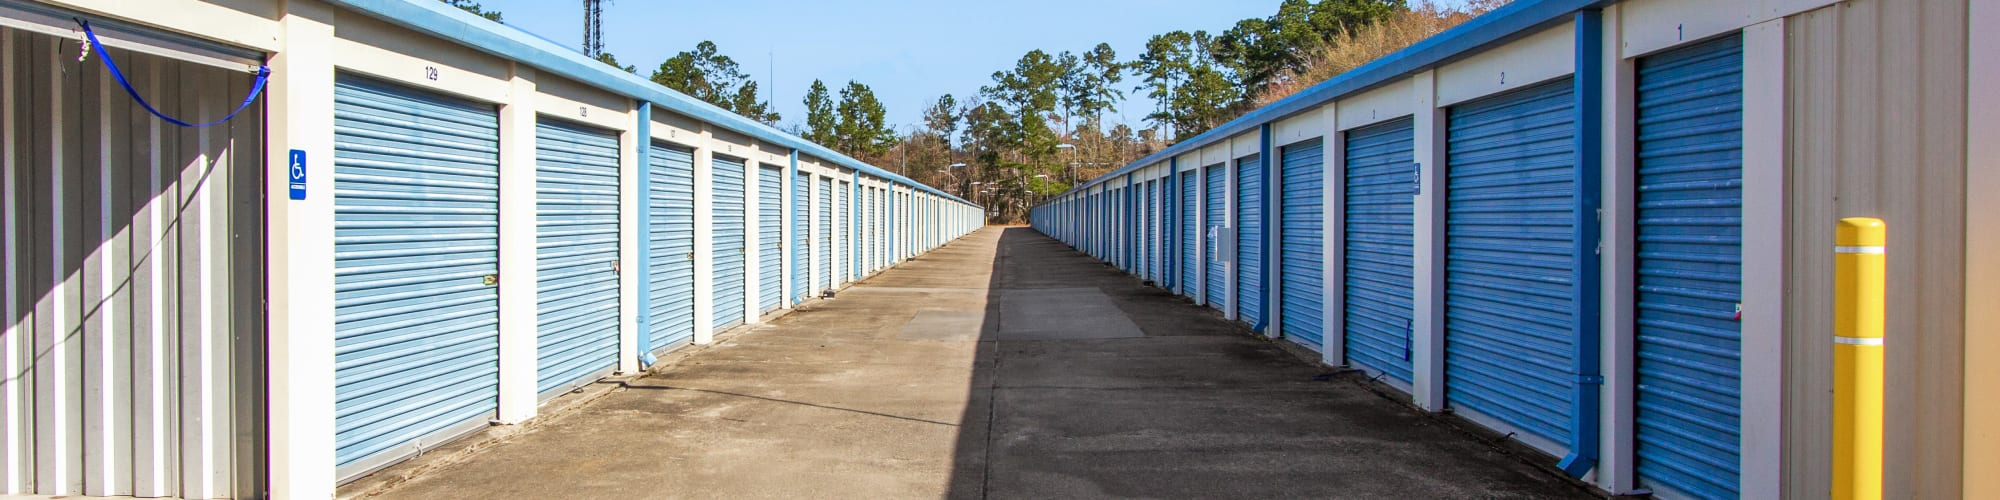 Reviews for Global Self Storage in Summerville, South Carolina